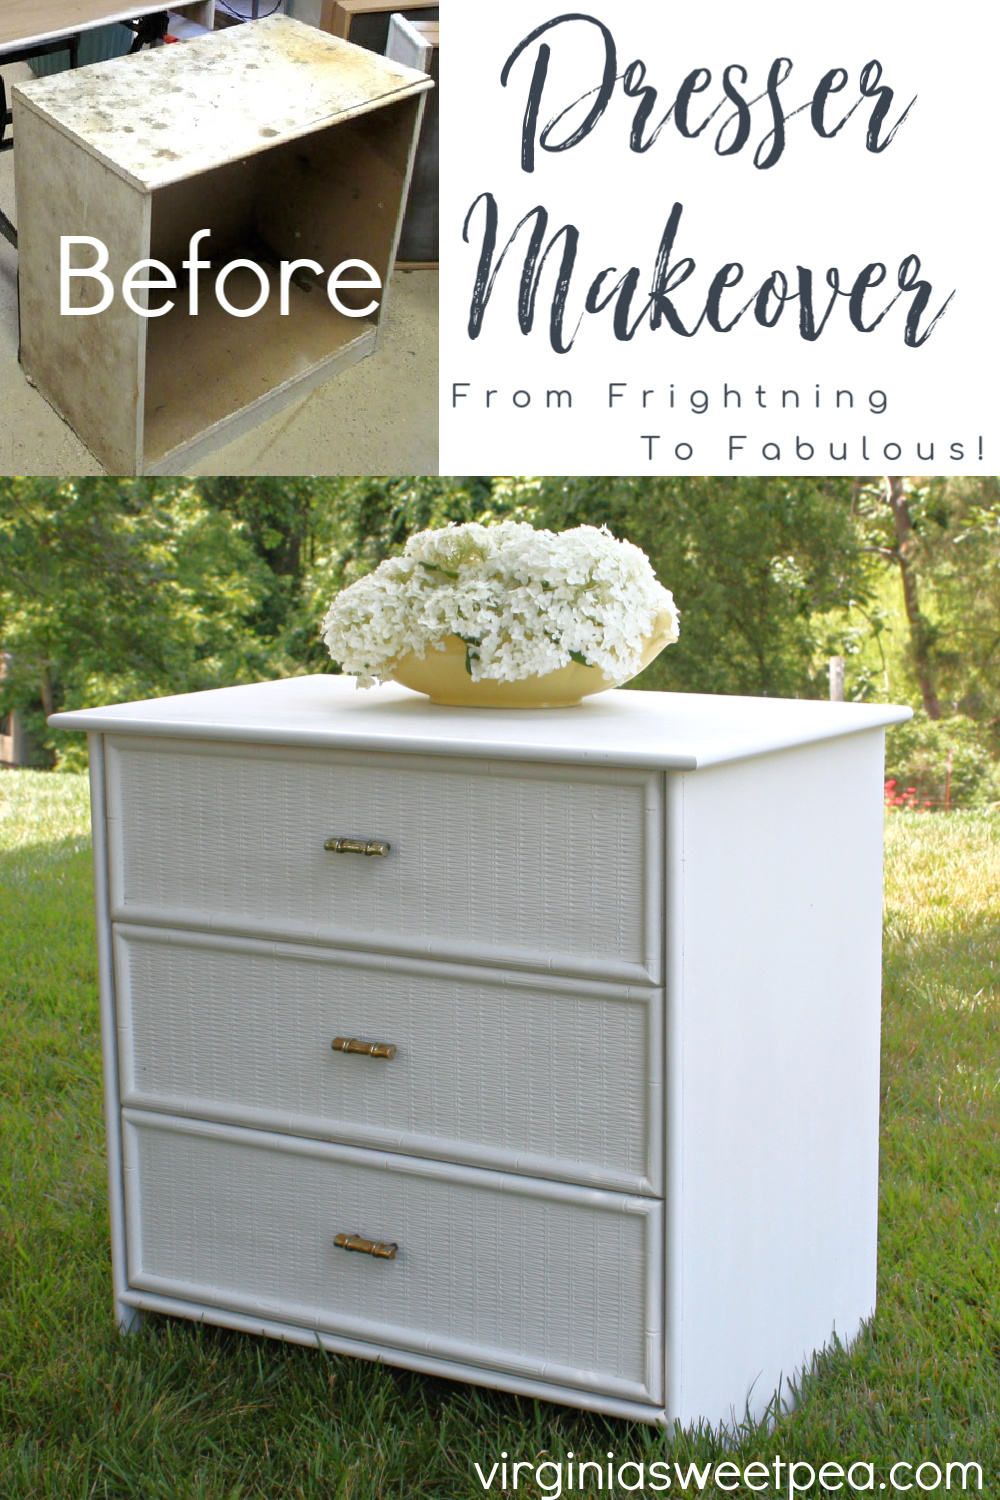 Dresser Makeover - A yard sale found dresser gets a makeover and now looks great! #dressermakeover #yardsalefind #furnituremakeover #paintedfurniture via @spaula